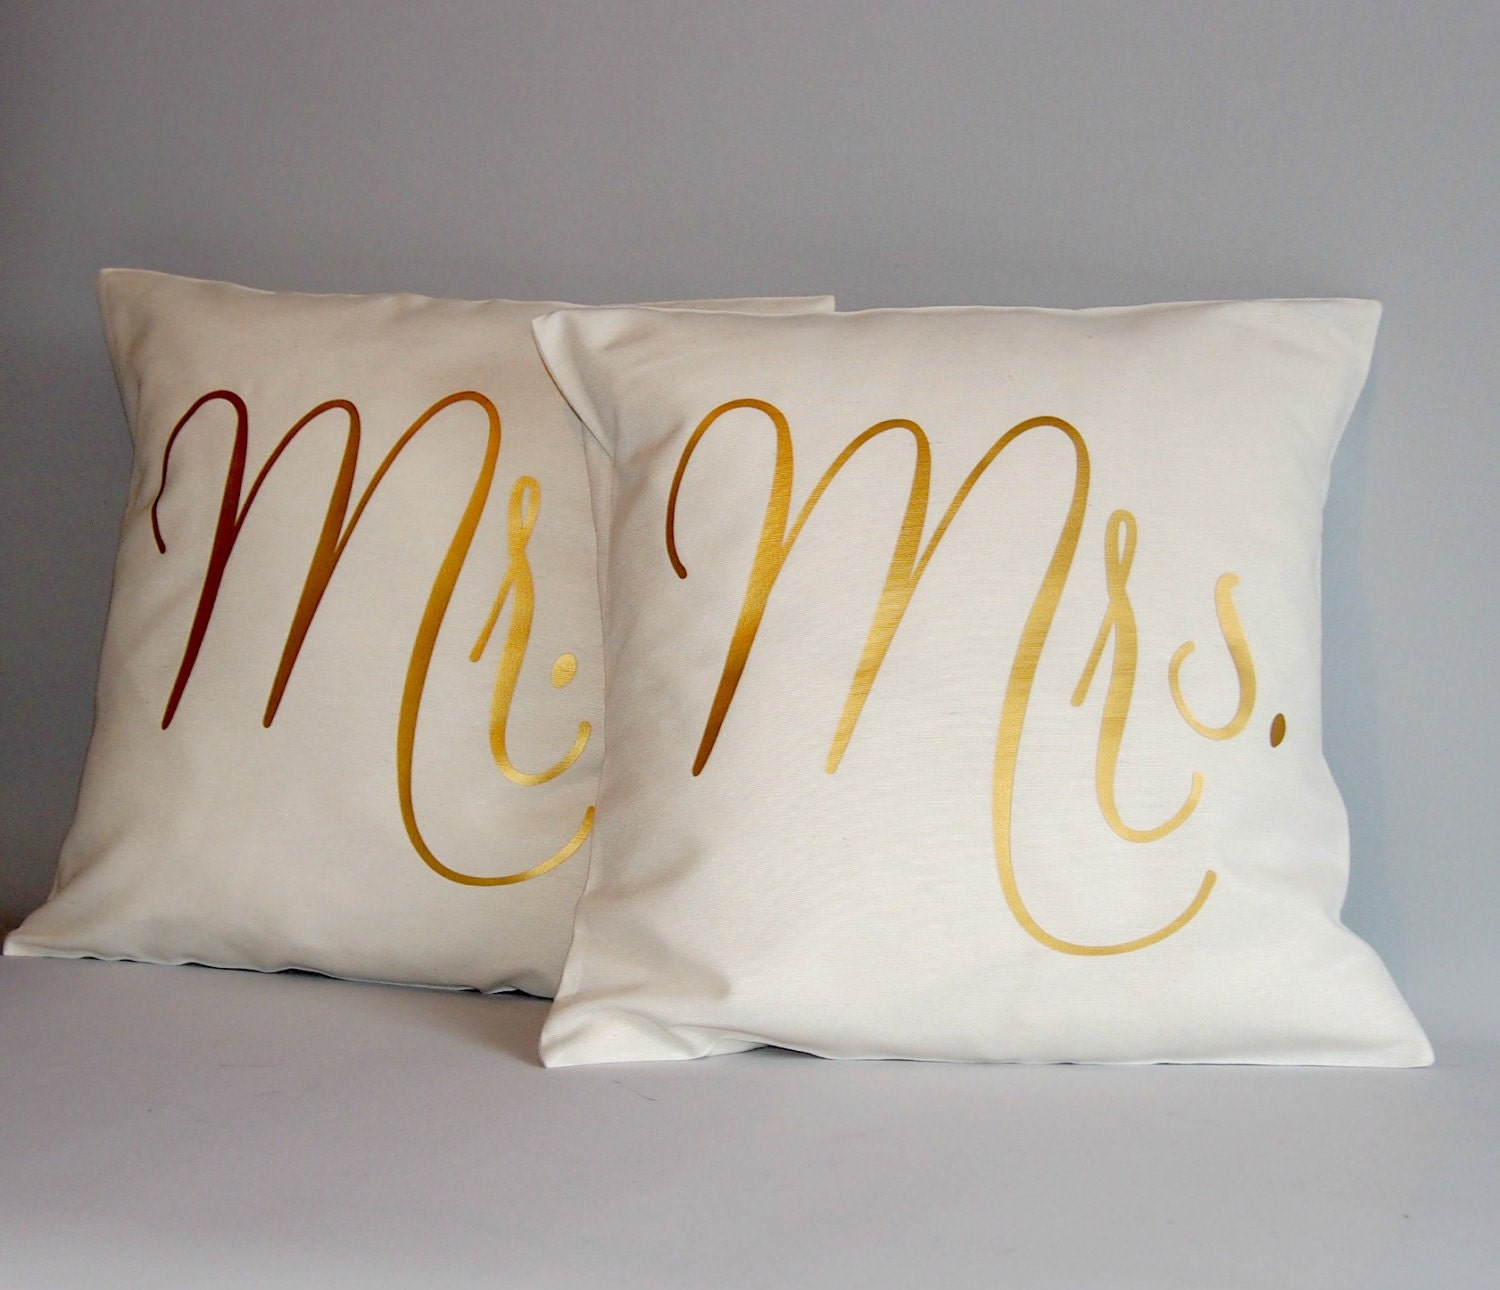 Mr And Mrs Pillow Covers 28 Images Items Similar To Personalized Mr And Mrs Pillow Covers In